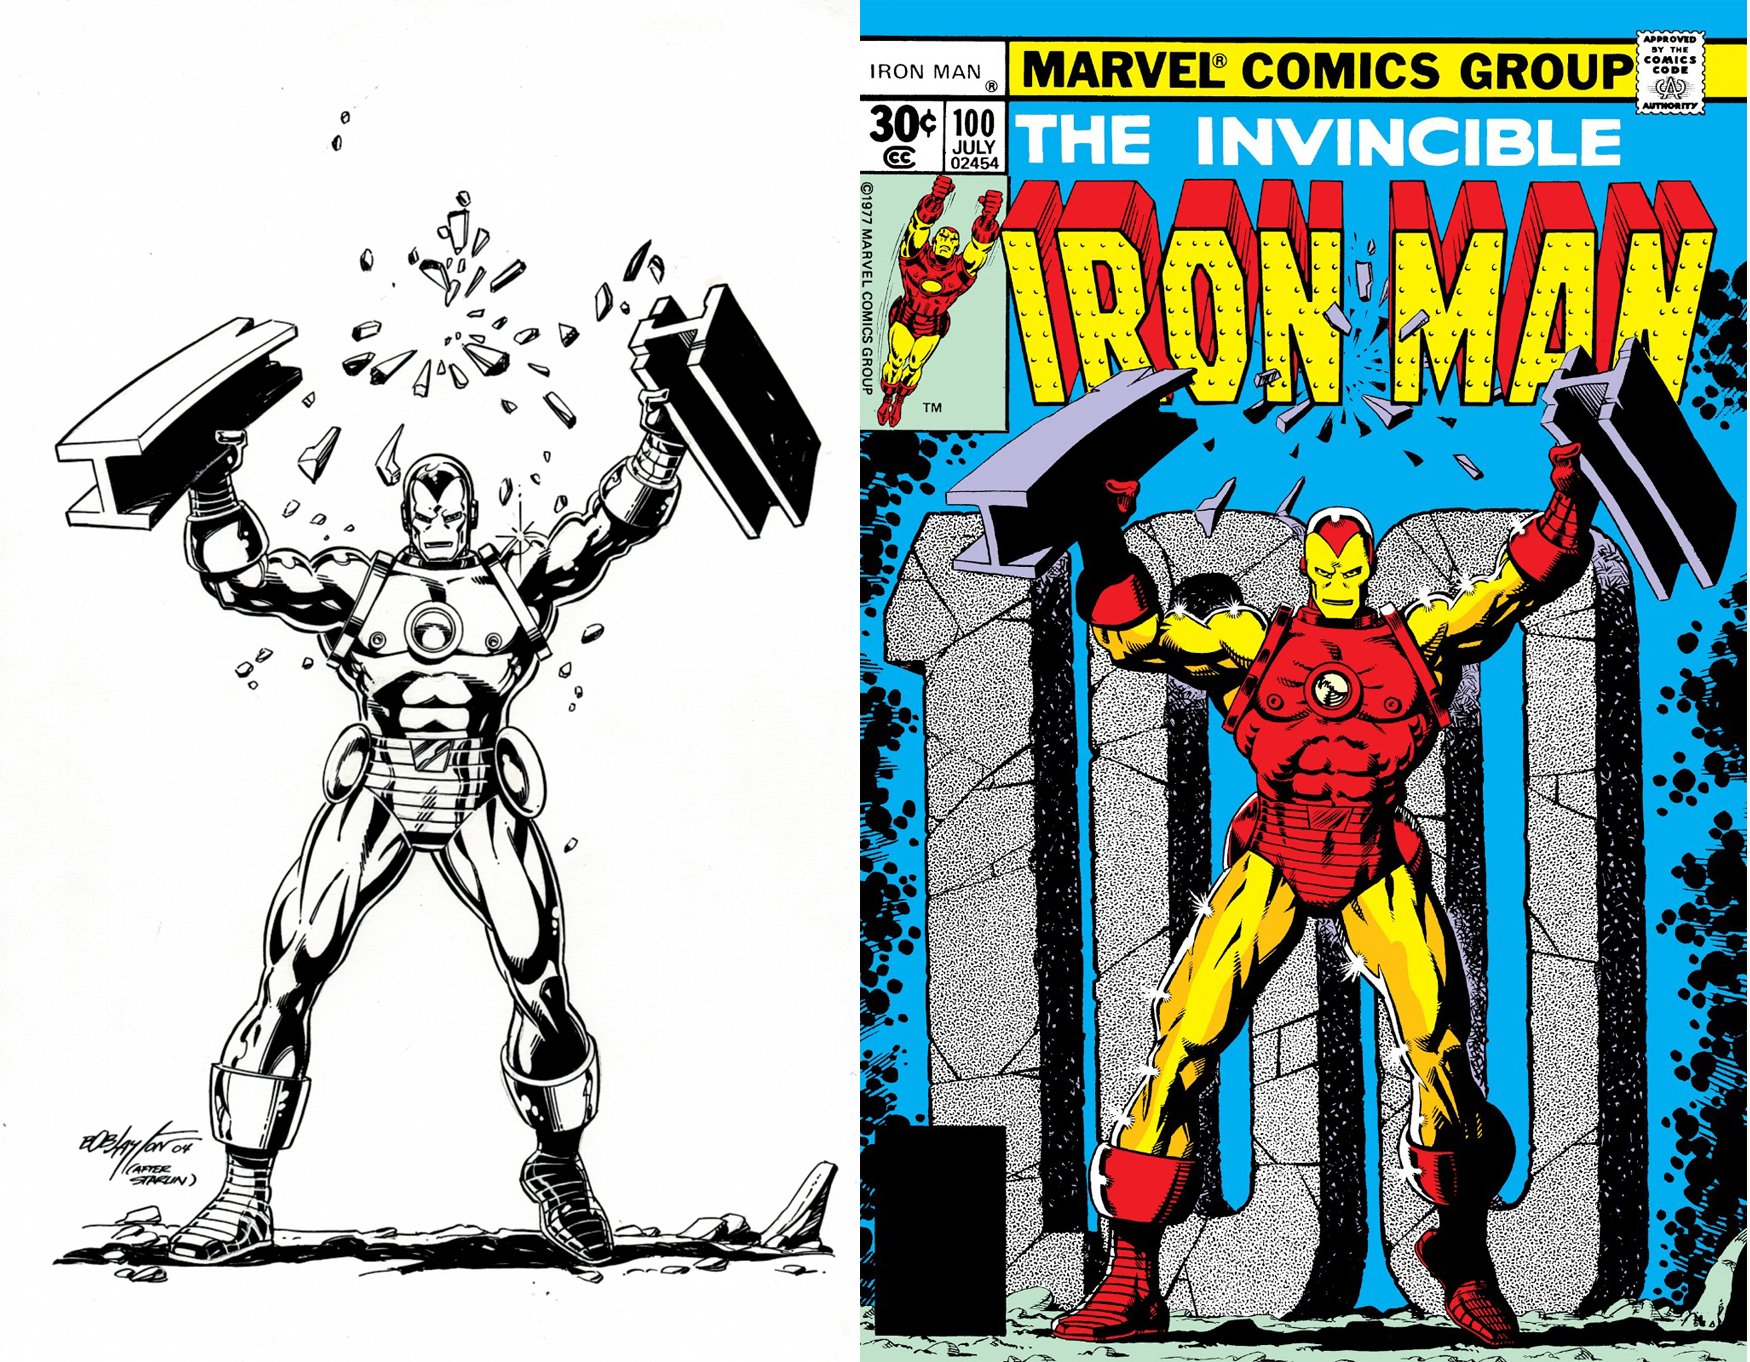 Iron Man #100 Cover Recreation (SOLD LIVE ON 'DUELING DEALERS OF COMIC ART' EPISODE #39 PODCAST ON 10-4-2021